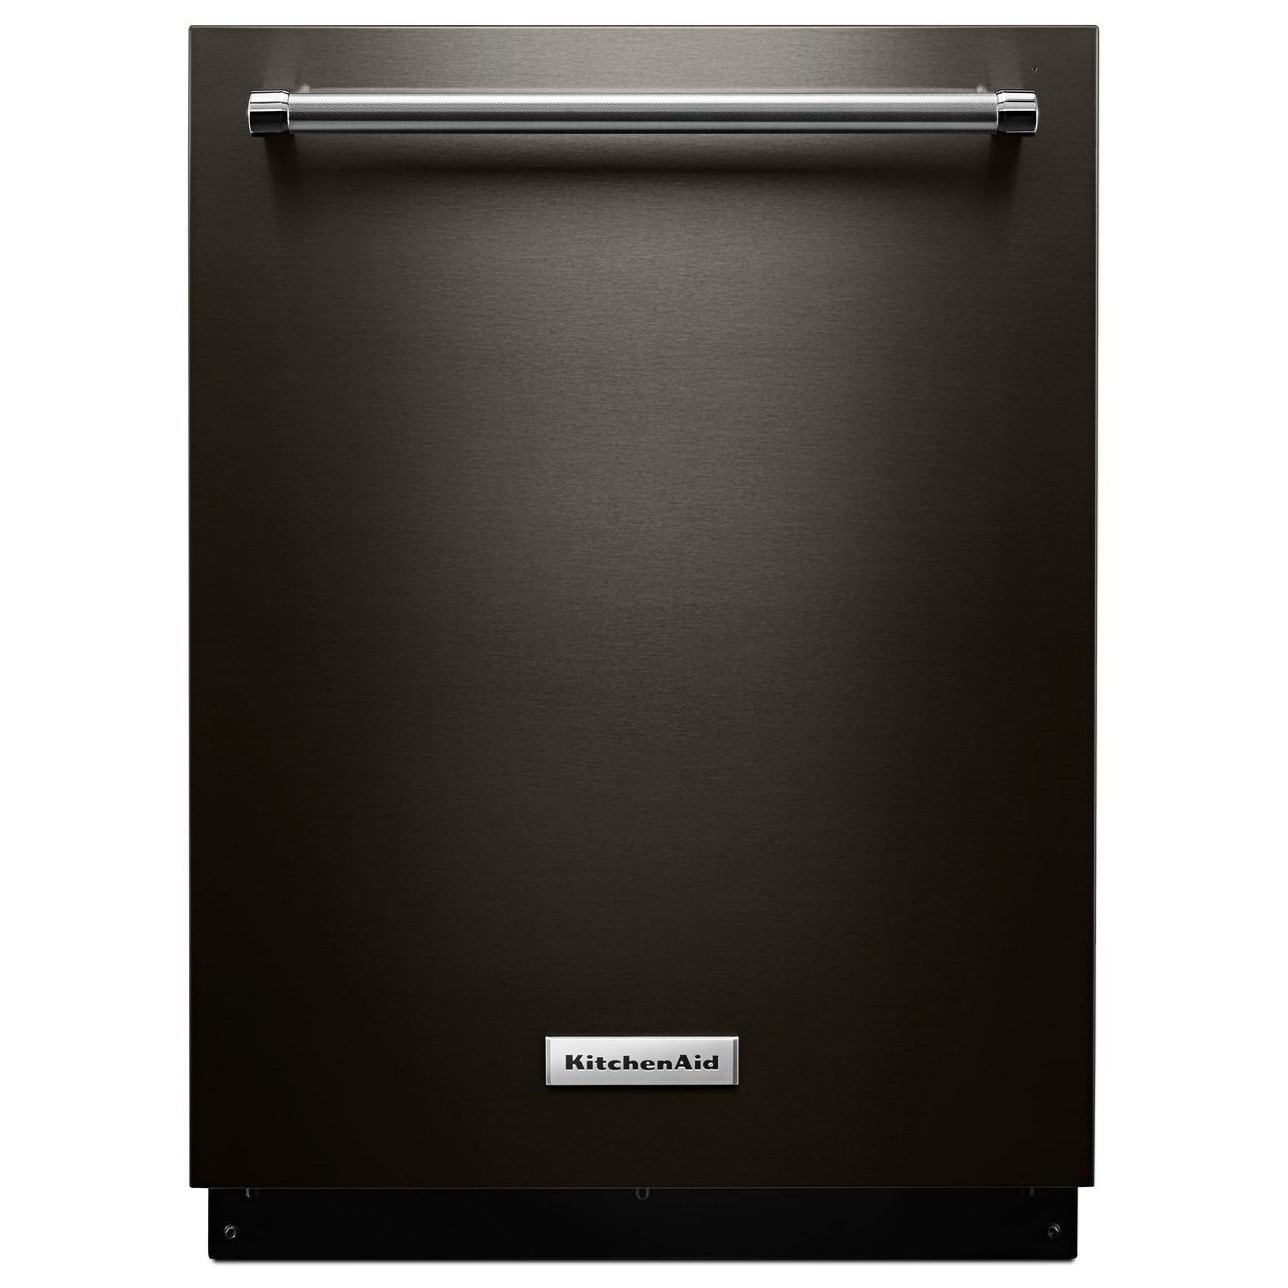 KitchenAid Dishwashers 46 DBA Dishwasher by KitchenAid at Story & Lee Furniture